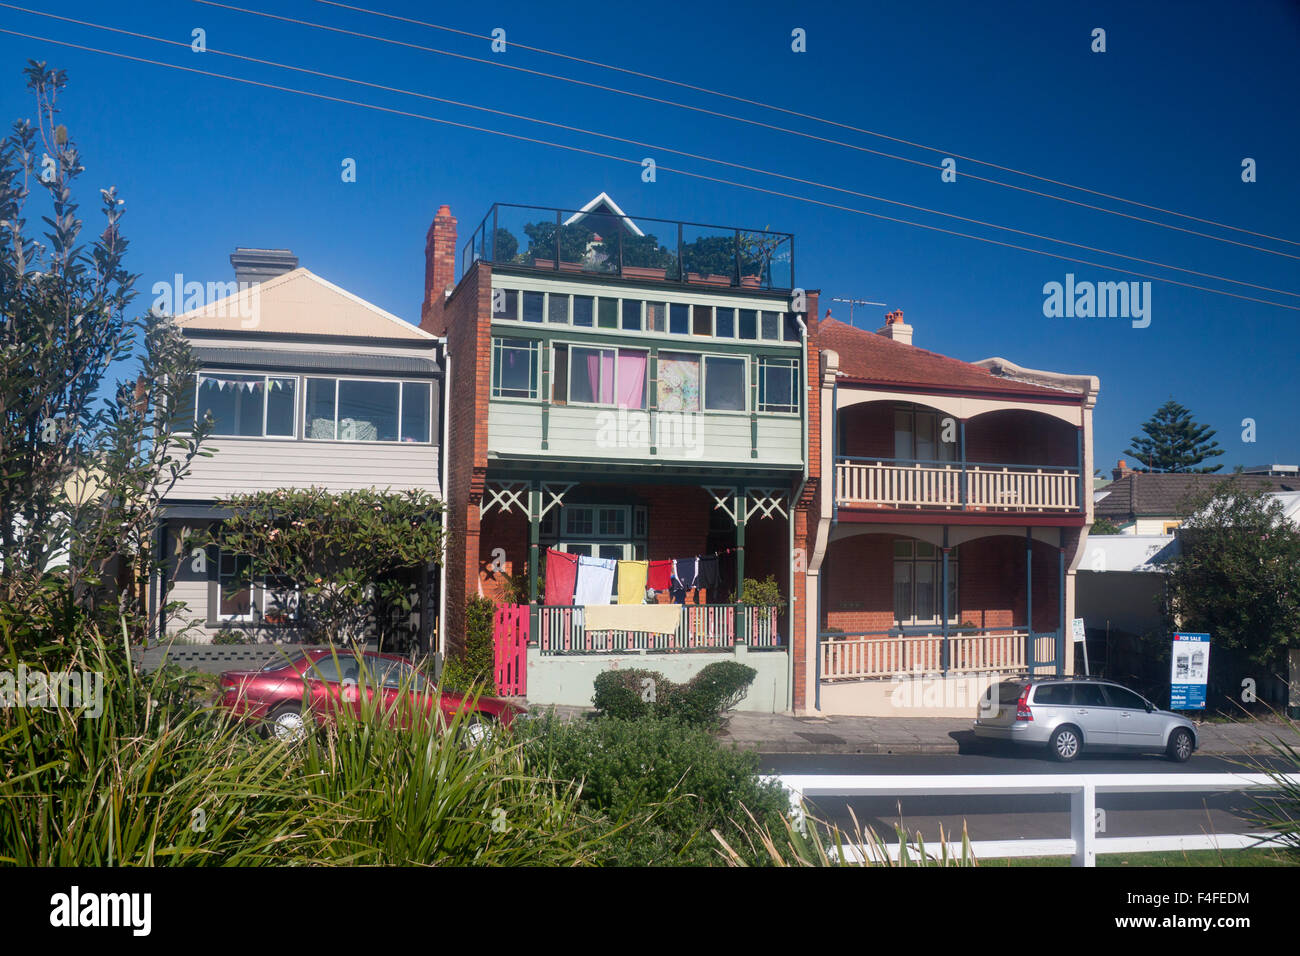 Historic Houses Different Architectural Styles One With Verandah Newcastle New South Wales NSW Australia